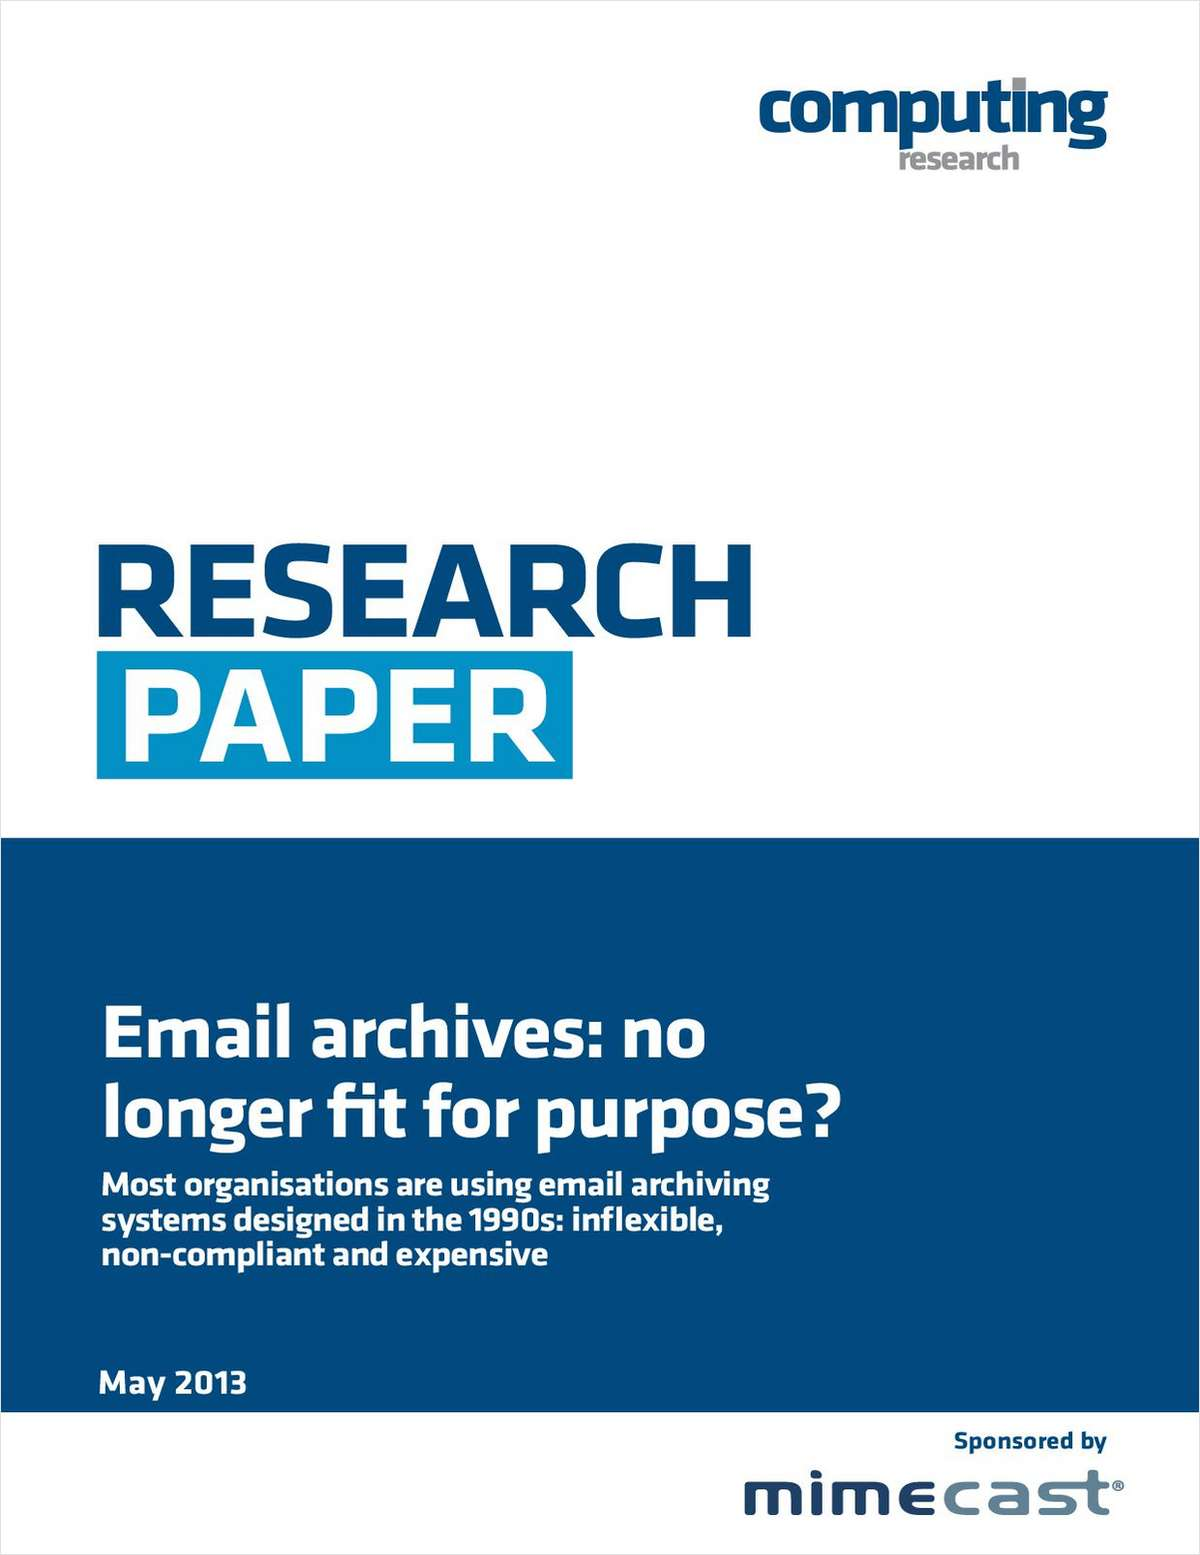 Email Archives: No Longer Fit for Purpose?